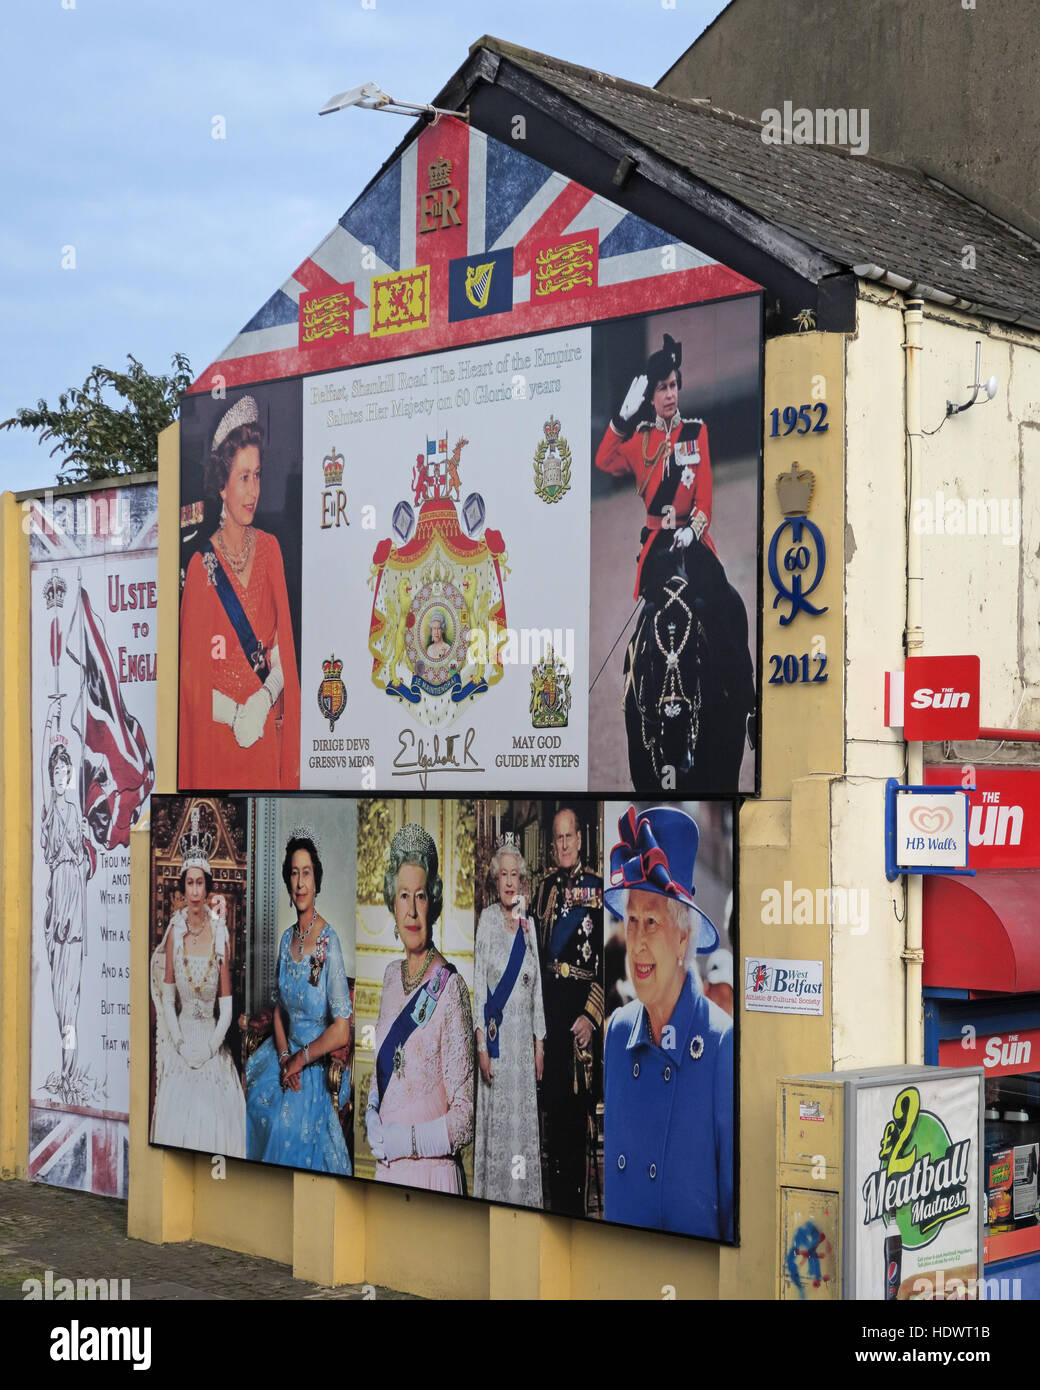 Red hand,Ulster,memorial,UFF,Unionist,mural,off,Shankill,rd,Road,West Belfast,Northern Ireland,UK,Ireland,fighter,fighting,60 years,Queen Elizabeth II,Royal subjects,royal,subjects,Queen,Elizabeth,reign,over,QE2,QEII,gable,end,gable end,GoTonySmith,@HotpixUK,Tony,Smith,UK,GB,Great,Britain,United,Kingdom,Irish,British,Ireland,problem,with,problem with,issue with,NI,Northern,Northern Ireland,Belfast,City,Centre,Art,Artists,the,troubles,The Troubles,Good Friday Agreement,Peace,honour,painting,wall,walls,tribute,Unionist,unionism,Protestant,community,Fight,Justice,West,Beal,feirste,martyrs,social,tour,tourism,tourists,urban,six,counties,6,backdrop,county,Antrim,UVF,DUP,British,GB,Empire,Buy Pictures of,Buy Images Of,Images of,Stock Images,Tony Smith,United Kingdom,Great Britain,British Isles,Belfast protestant community,Peoples army